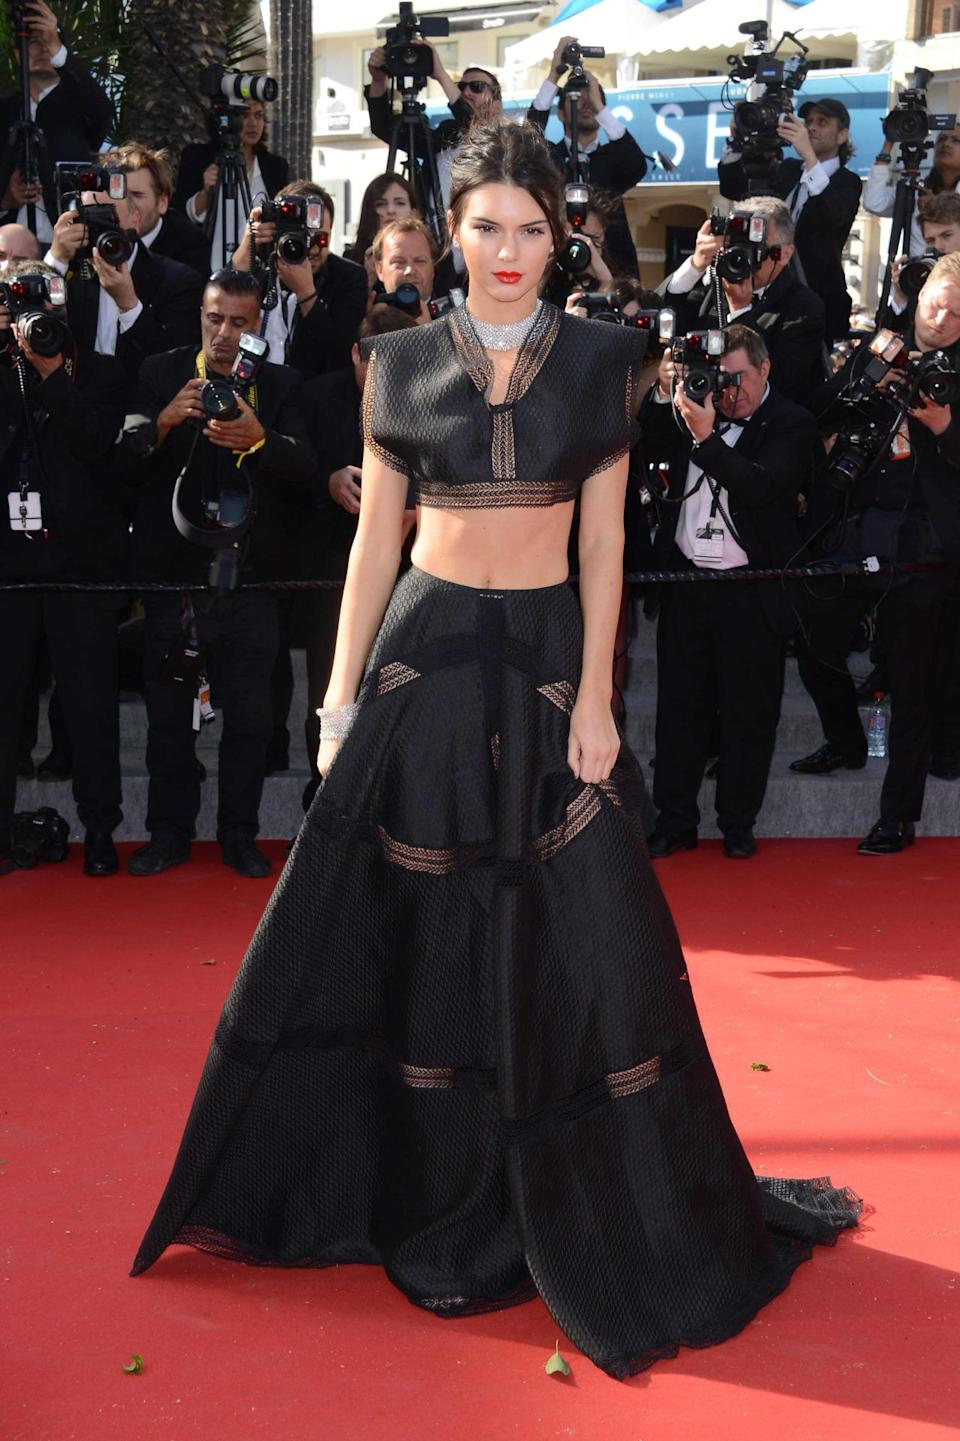 <p>For her first-ever red carpet appearance at the Cannes Film Festival, Jenner wore a va-va-voom Azzedine Alaïa black crop top and ball skirt combo. She posed and twirled, perfectly showing off her outfit's sexy illusion panels.</p>